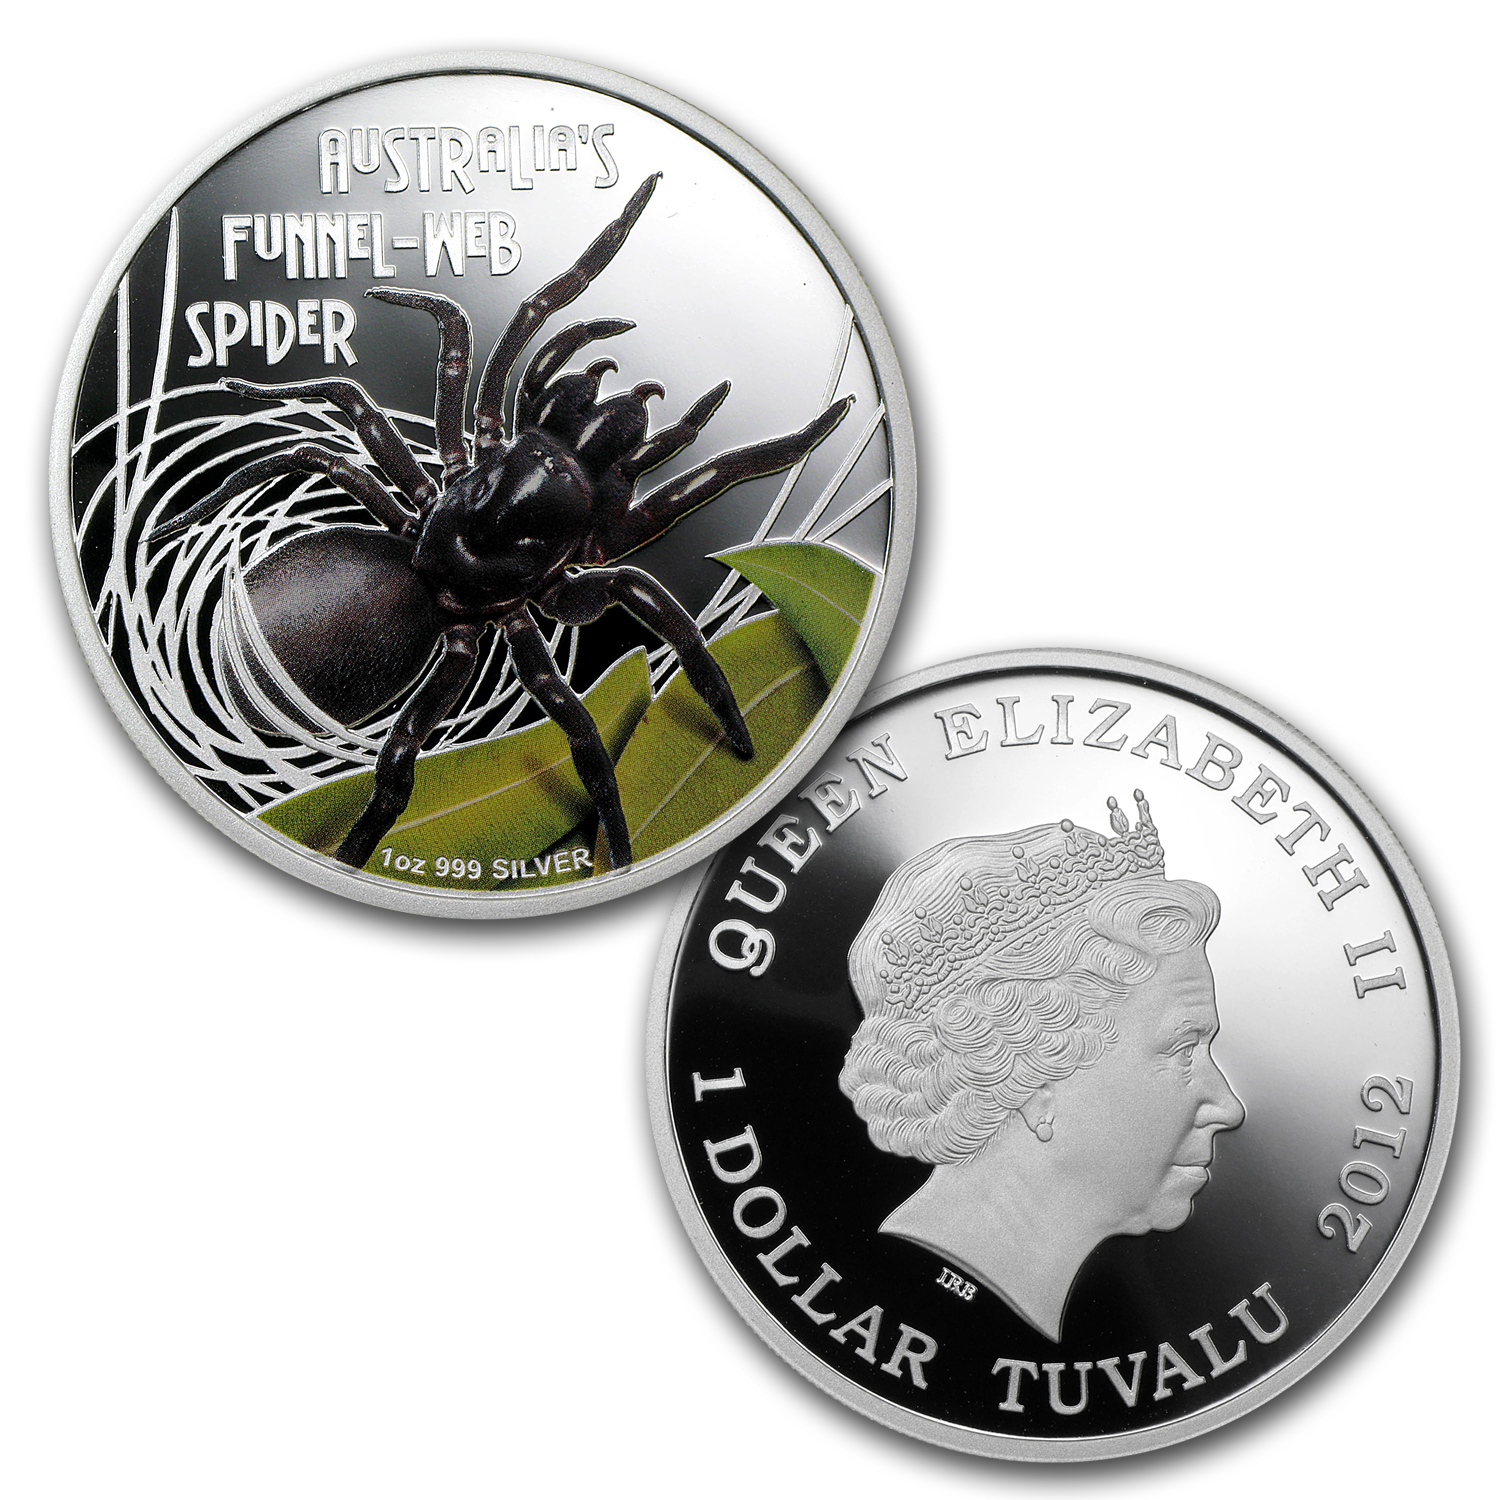 2011-12 1 oz Proof Silver Box Jellyfish & Funnel Web Spider